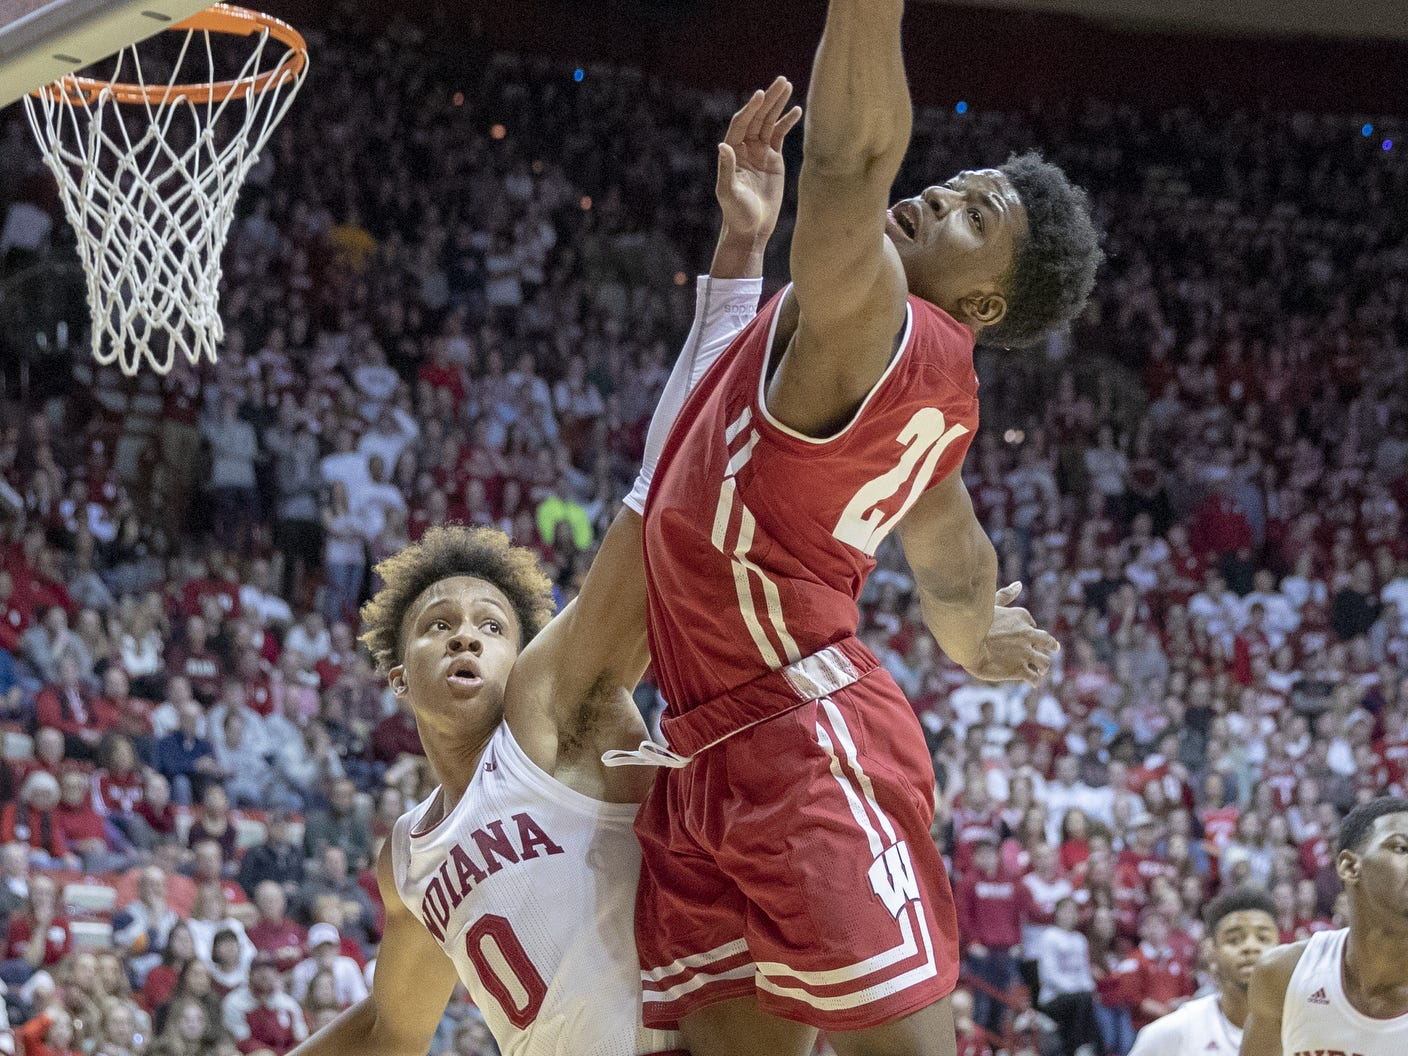 Indiana Hoosiers guard Romeo Langford looks for a rebound with Wisconsin Badgers guard Khalil Iverson (right), during first half action, Assembly Hall, Bloomington, Tuesday, Feb. 26, 2019.